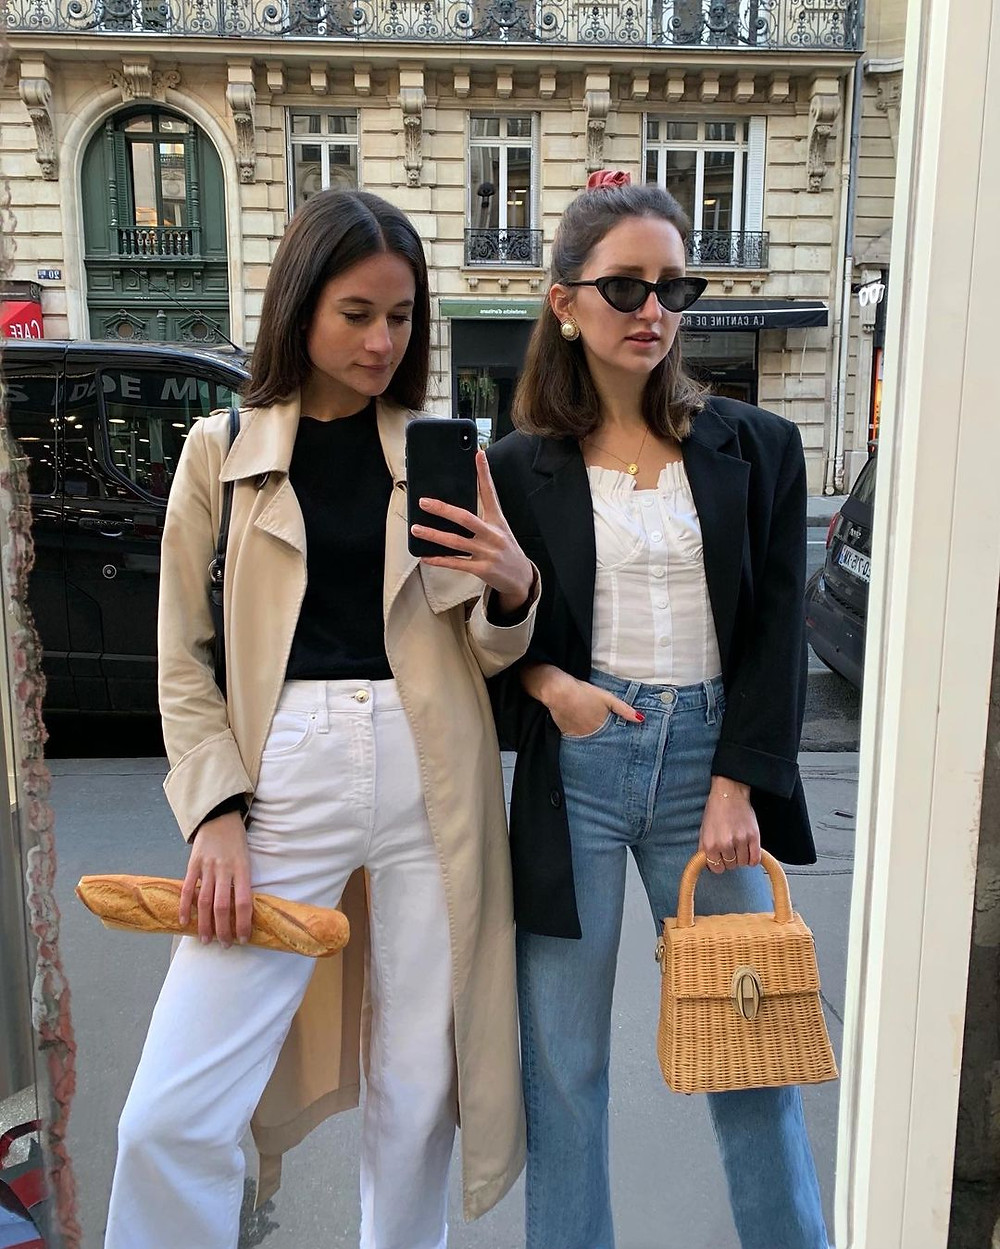 two stylish women in paris in light jackets and jeans